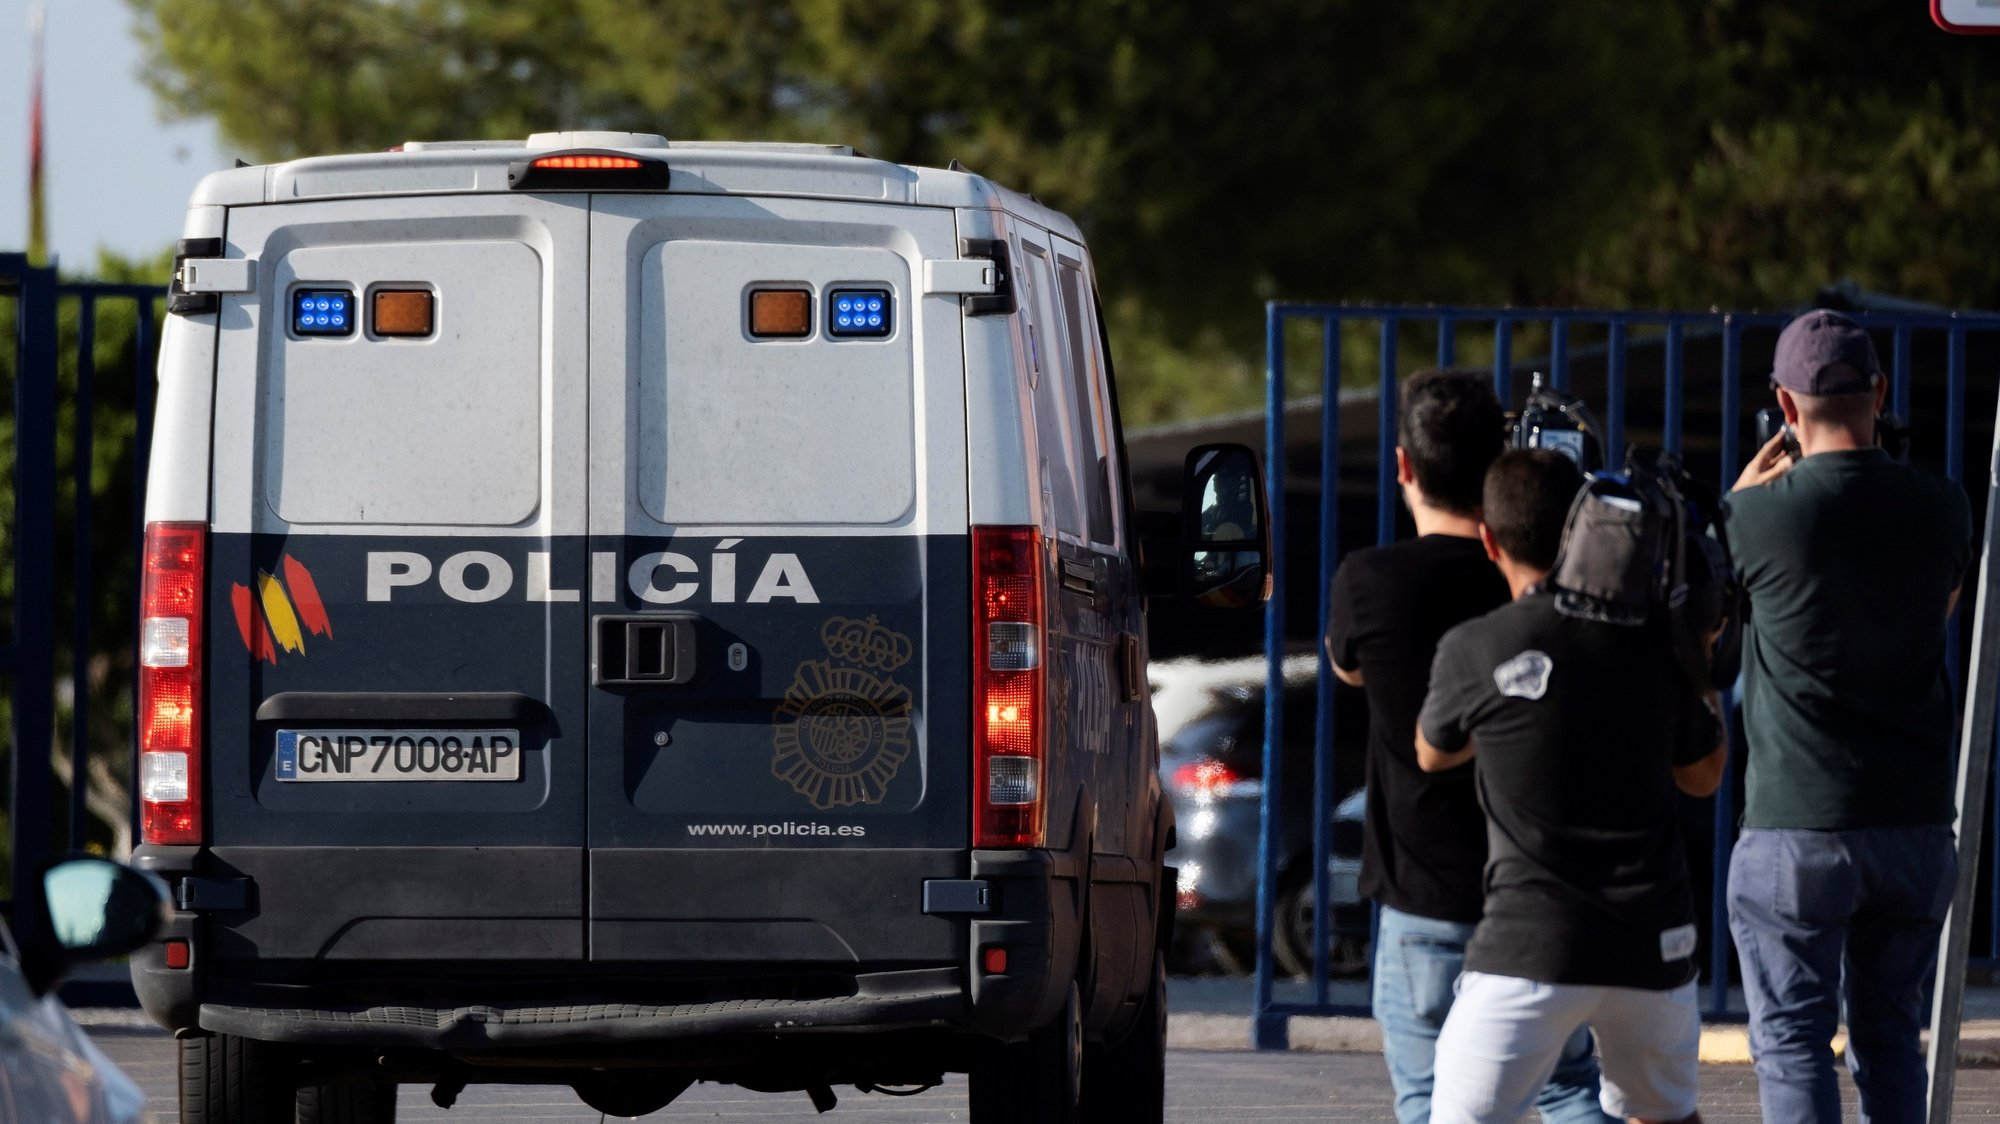 epa07664499 A Spanish National Police van transporting the five men accused of gang raping a woman back in 2016 during the San Fermines Fiesta, leaves a police station after their appearance in accordance to the legal requirements for their release on bail, in Sevilla, Spain, 21 June 2019. Spanish Police has arrested four of the five men popularly known as 'La Manada' (wolfpack) in accordance to the arrest warrant ordered by Navarra Provincial Court after Spanish Supreme Court rose from 9 to 15 years the sentence against them for raping a young woman during San Fermines fiestas back in 2016. The Supreme Court considered that all the five accused committed a sexual assault invalidating the previous sentence by Navarra High Court of Justice that read that the aggression was only a sexual abuse.  EPA/PEPO HERRERA